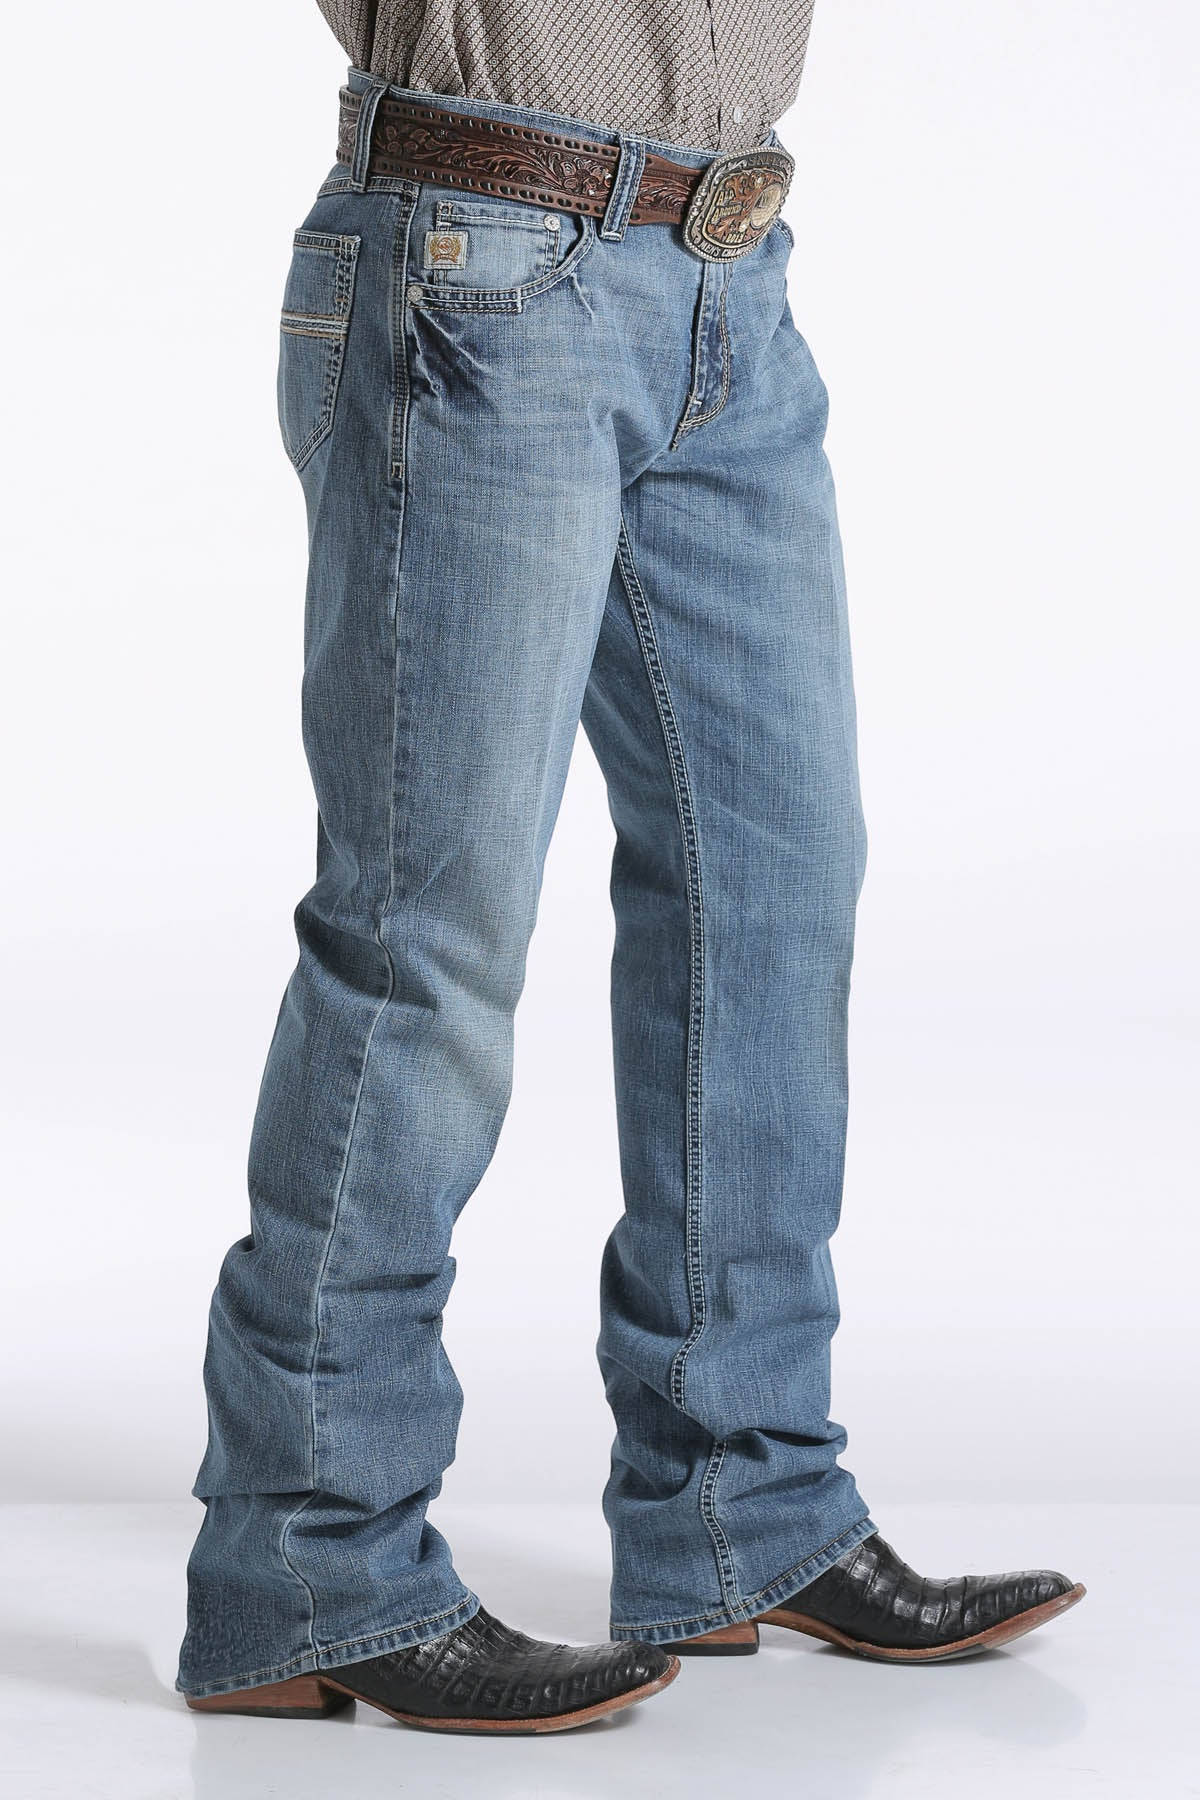 Cinch Carter 2.0 Relaxed Fit Light Wash Men's Jean